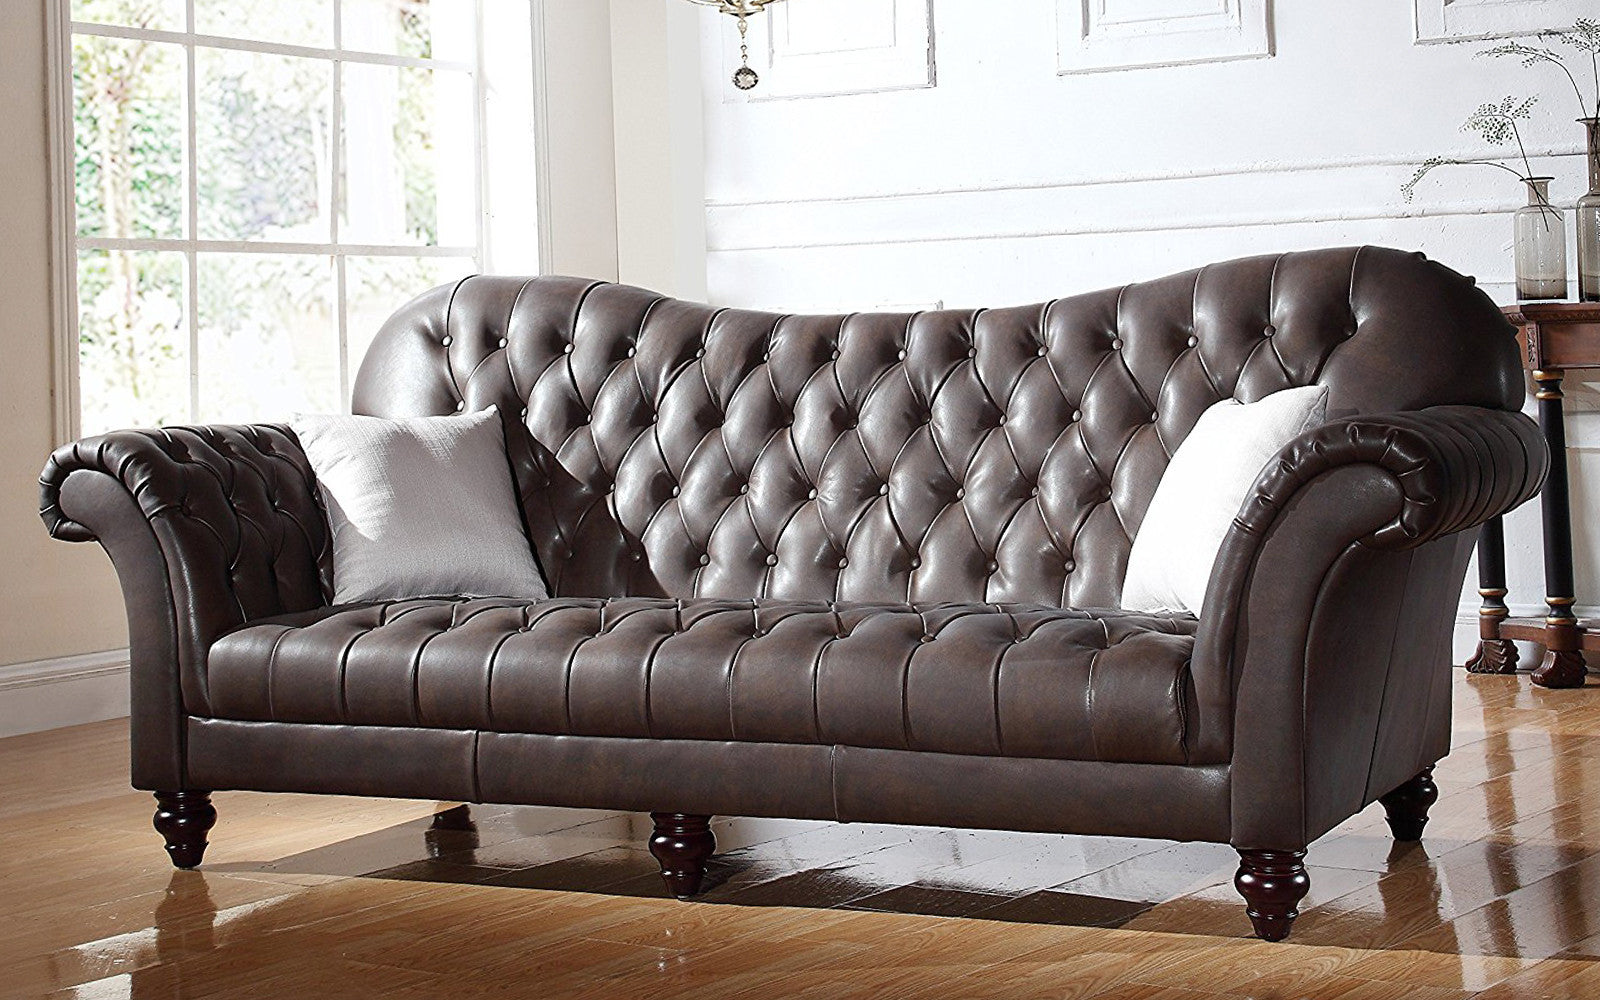 diana classic victorian italian leather sofa in dark brown - Italian Leather Sofa